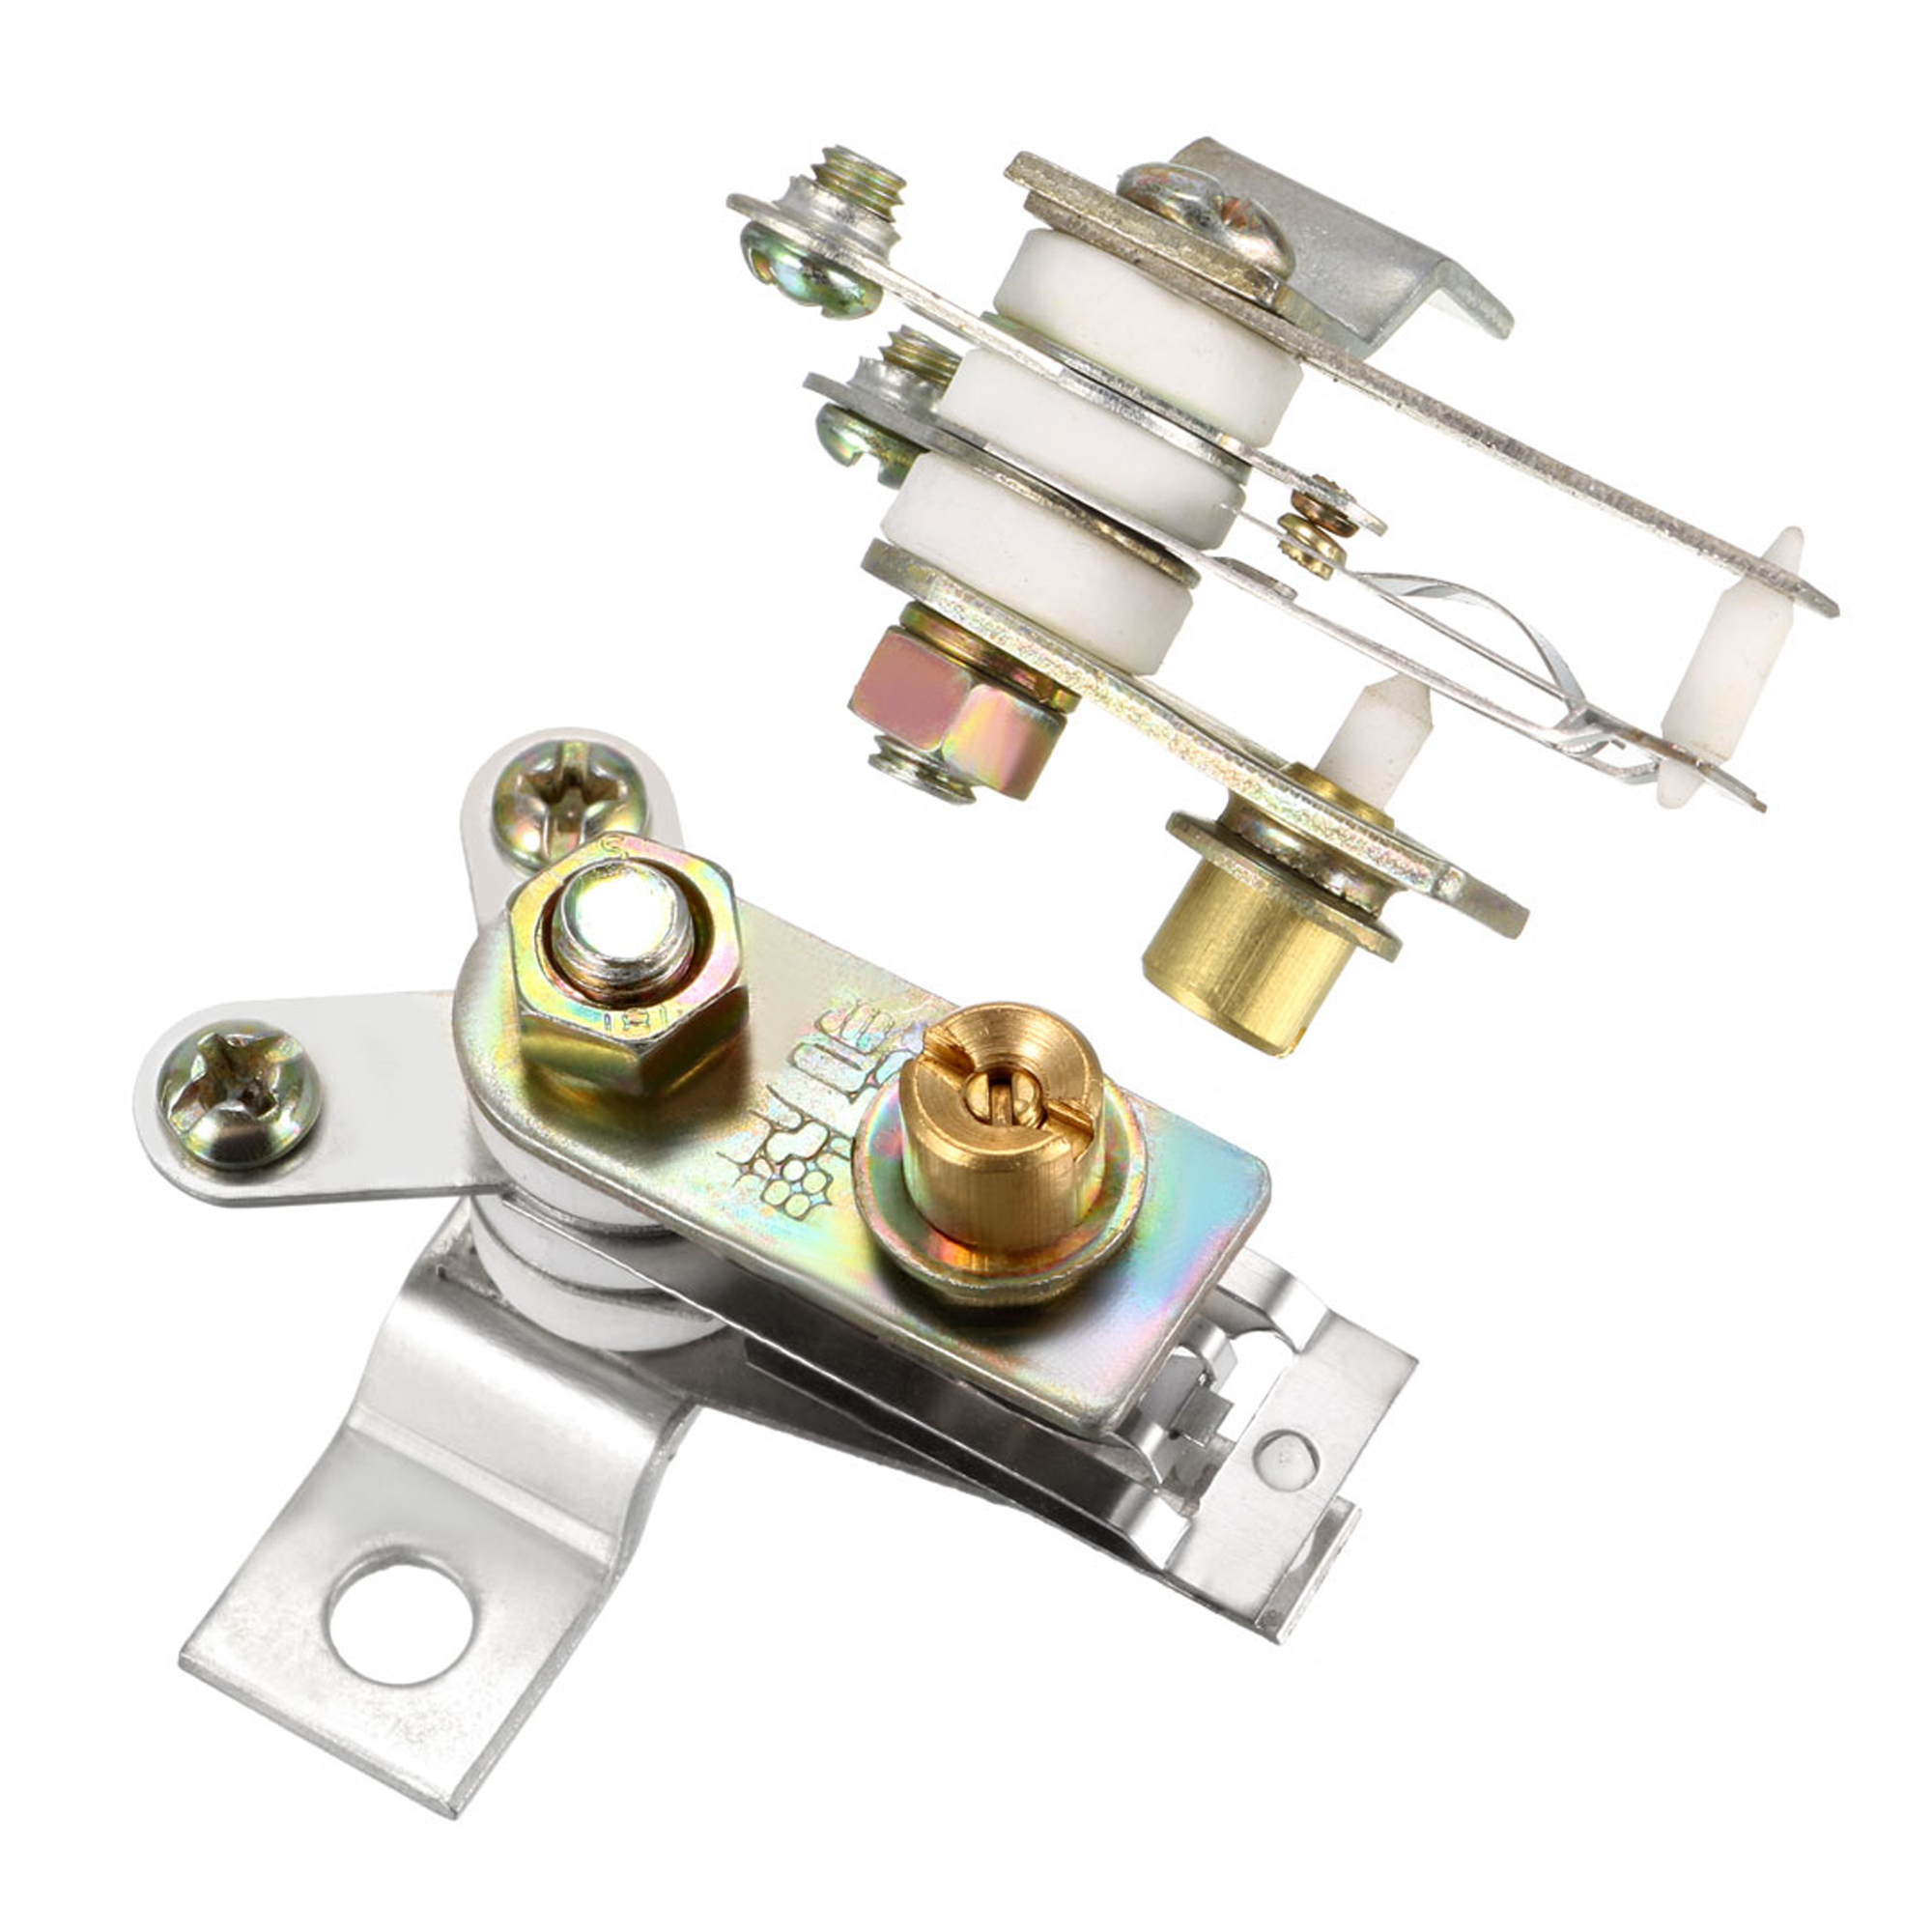 Temperature Controller 10A N.C Rice Cooker Heating Thermostat Switch 2pcs - Walmart.com